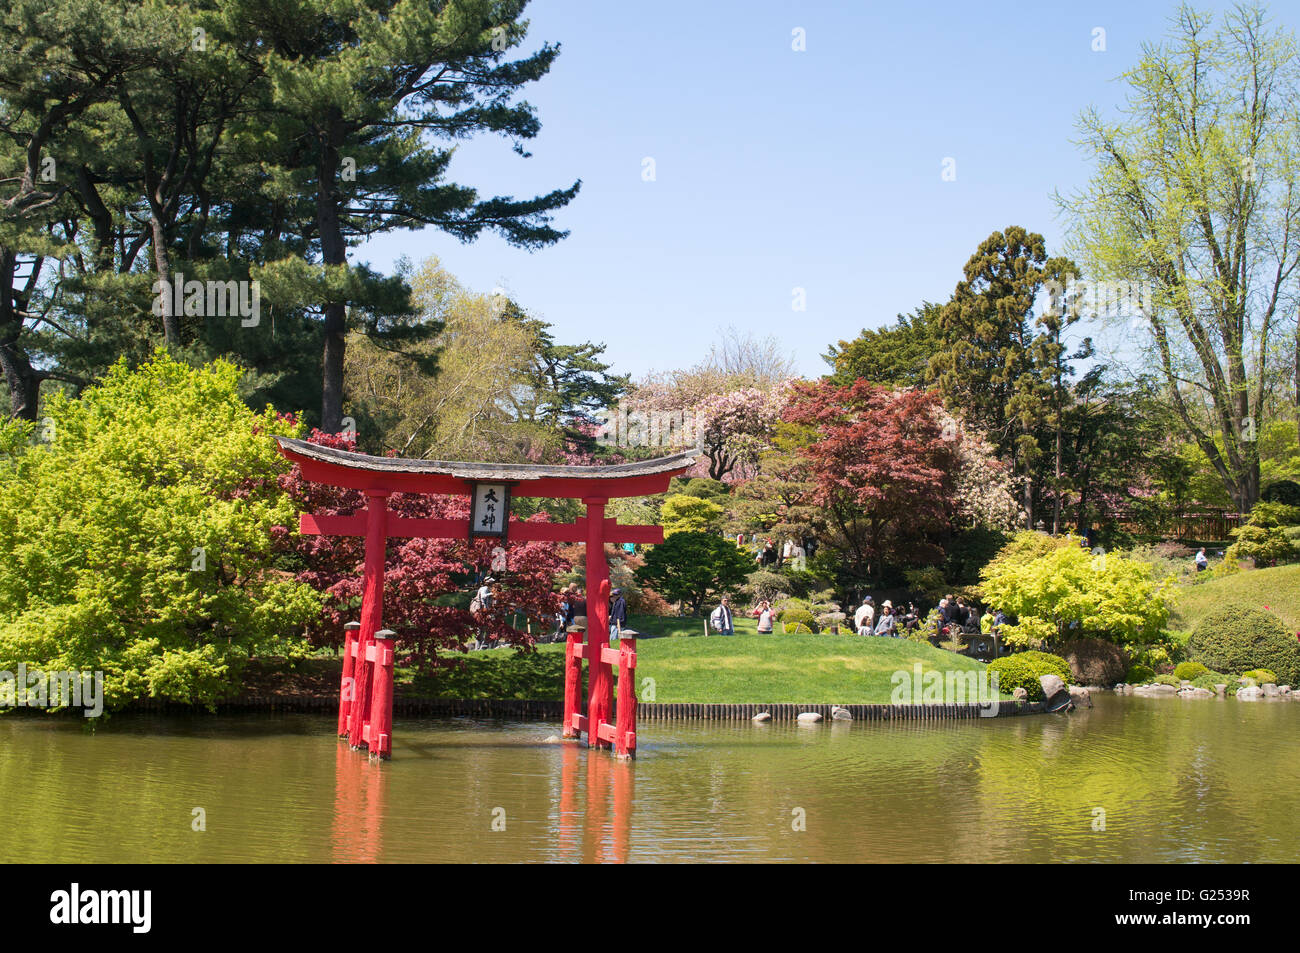 The Japanese Garden At Brooklyn Botanic Garden New York Usa Stock Photo Royalty Free Image